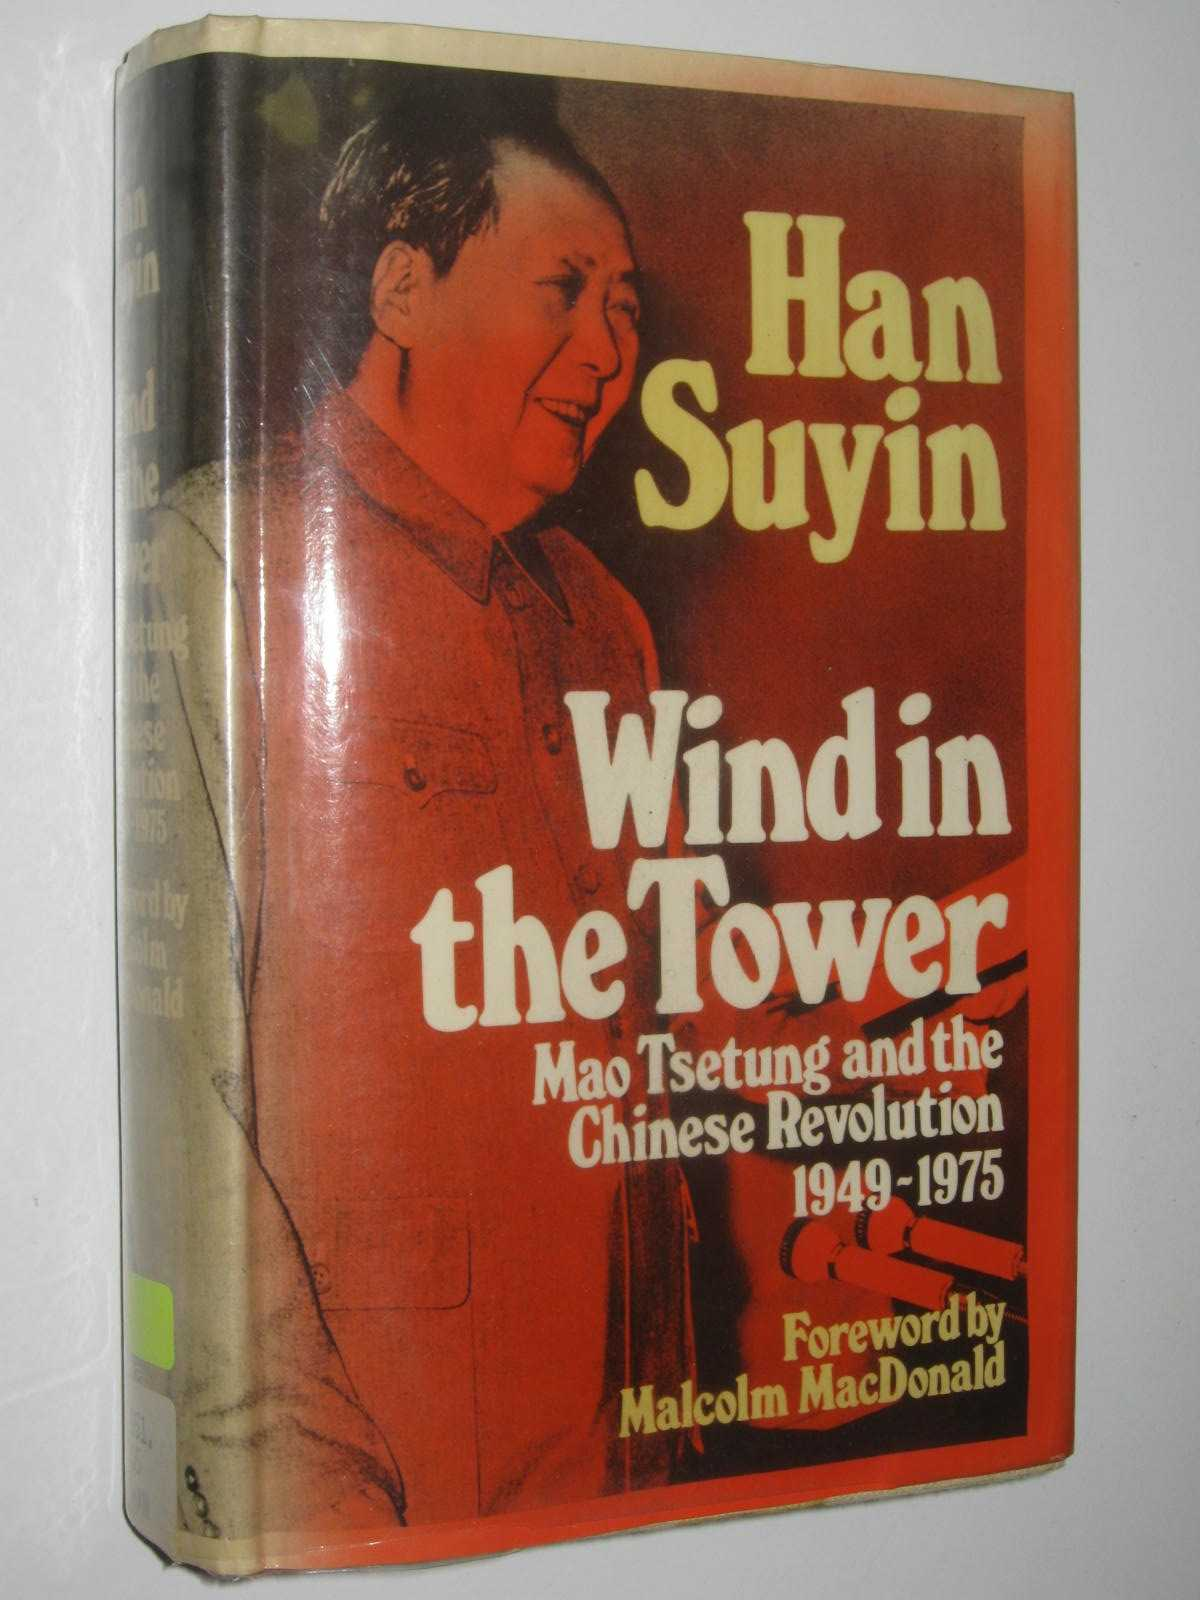 Image for Wind in the Tower : Mao Tsetung and the Chinese Revolution 1949-1975